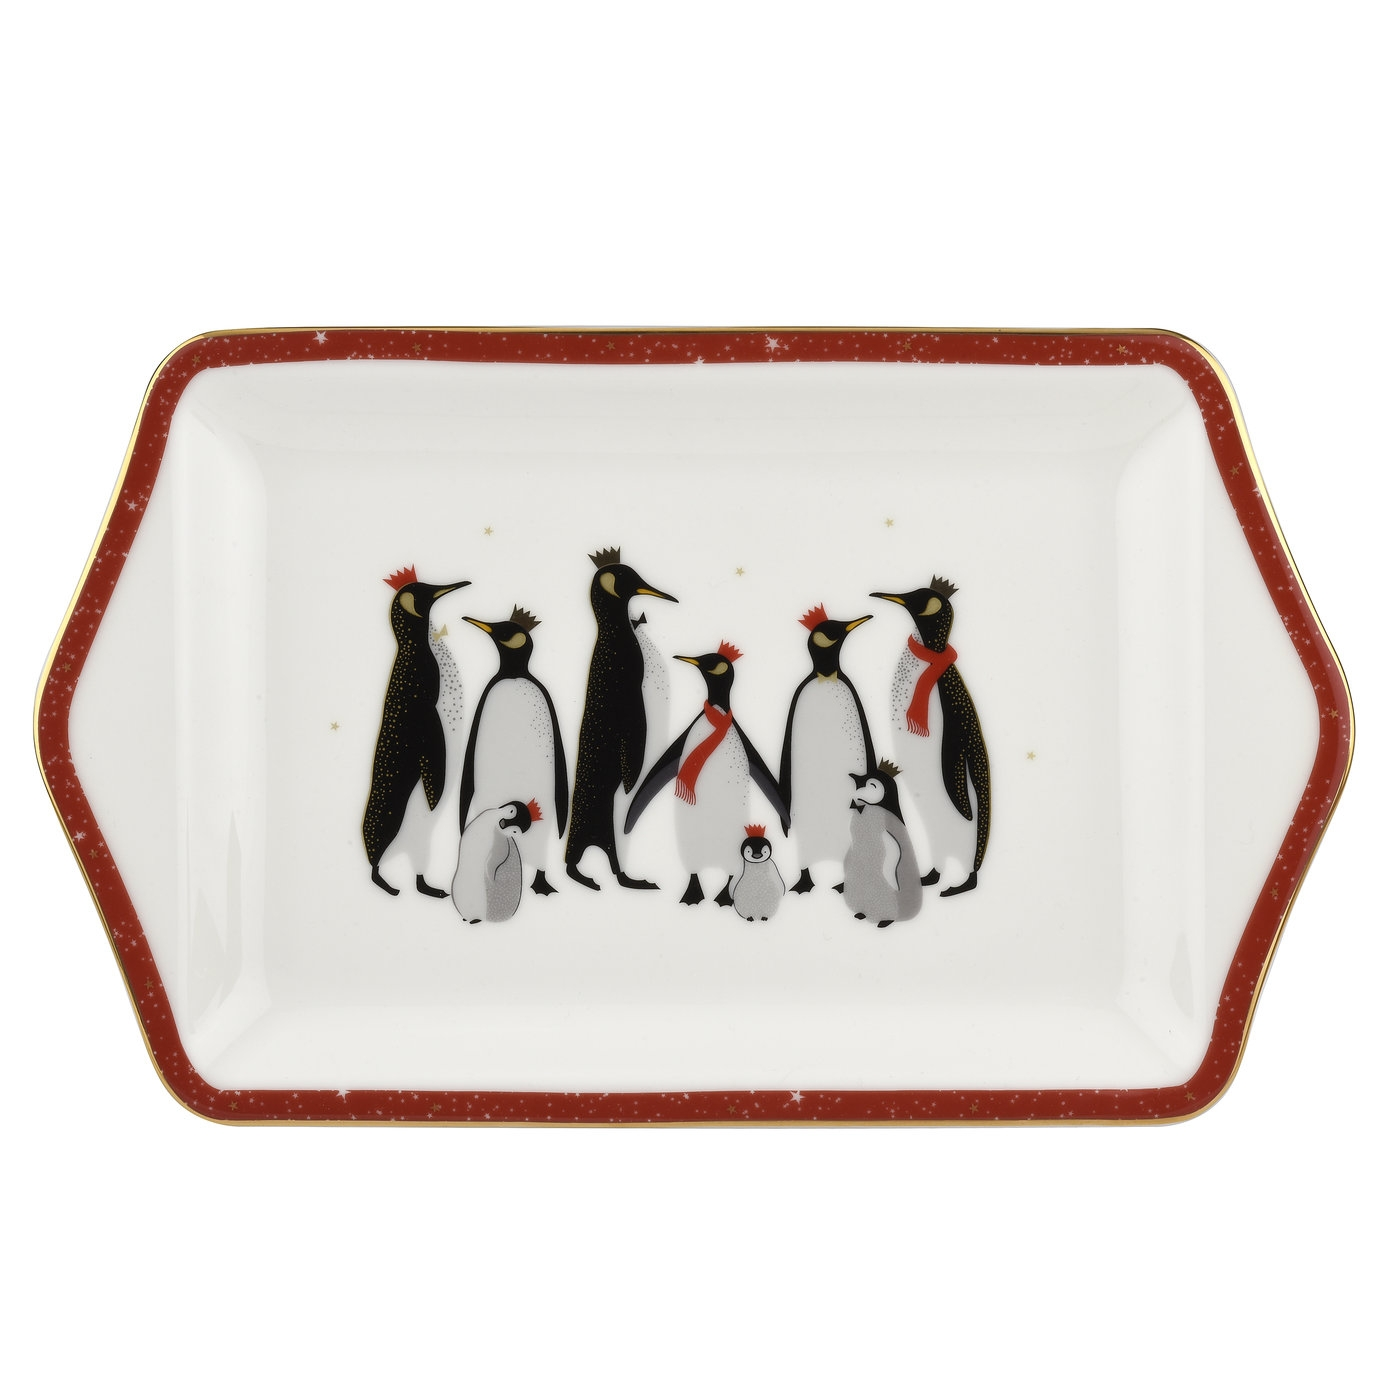 Sara Miller London For Portmeirion Christmas Penguin Red 12 Inch Dessert Tray image number 0